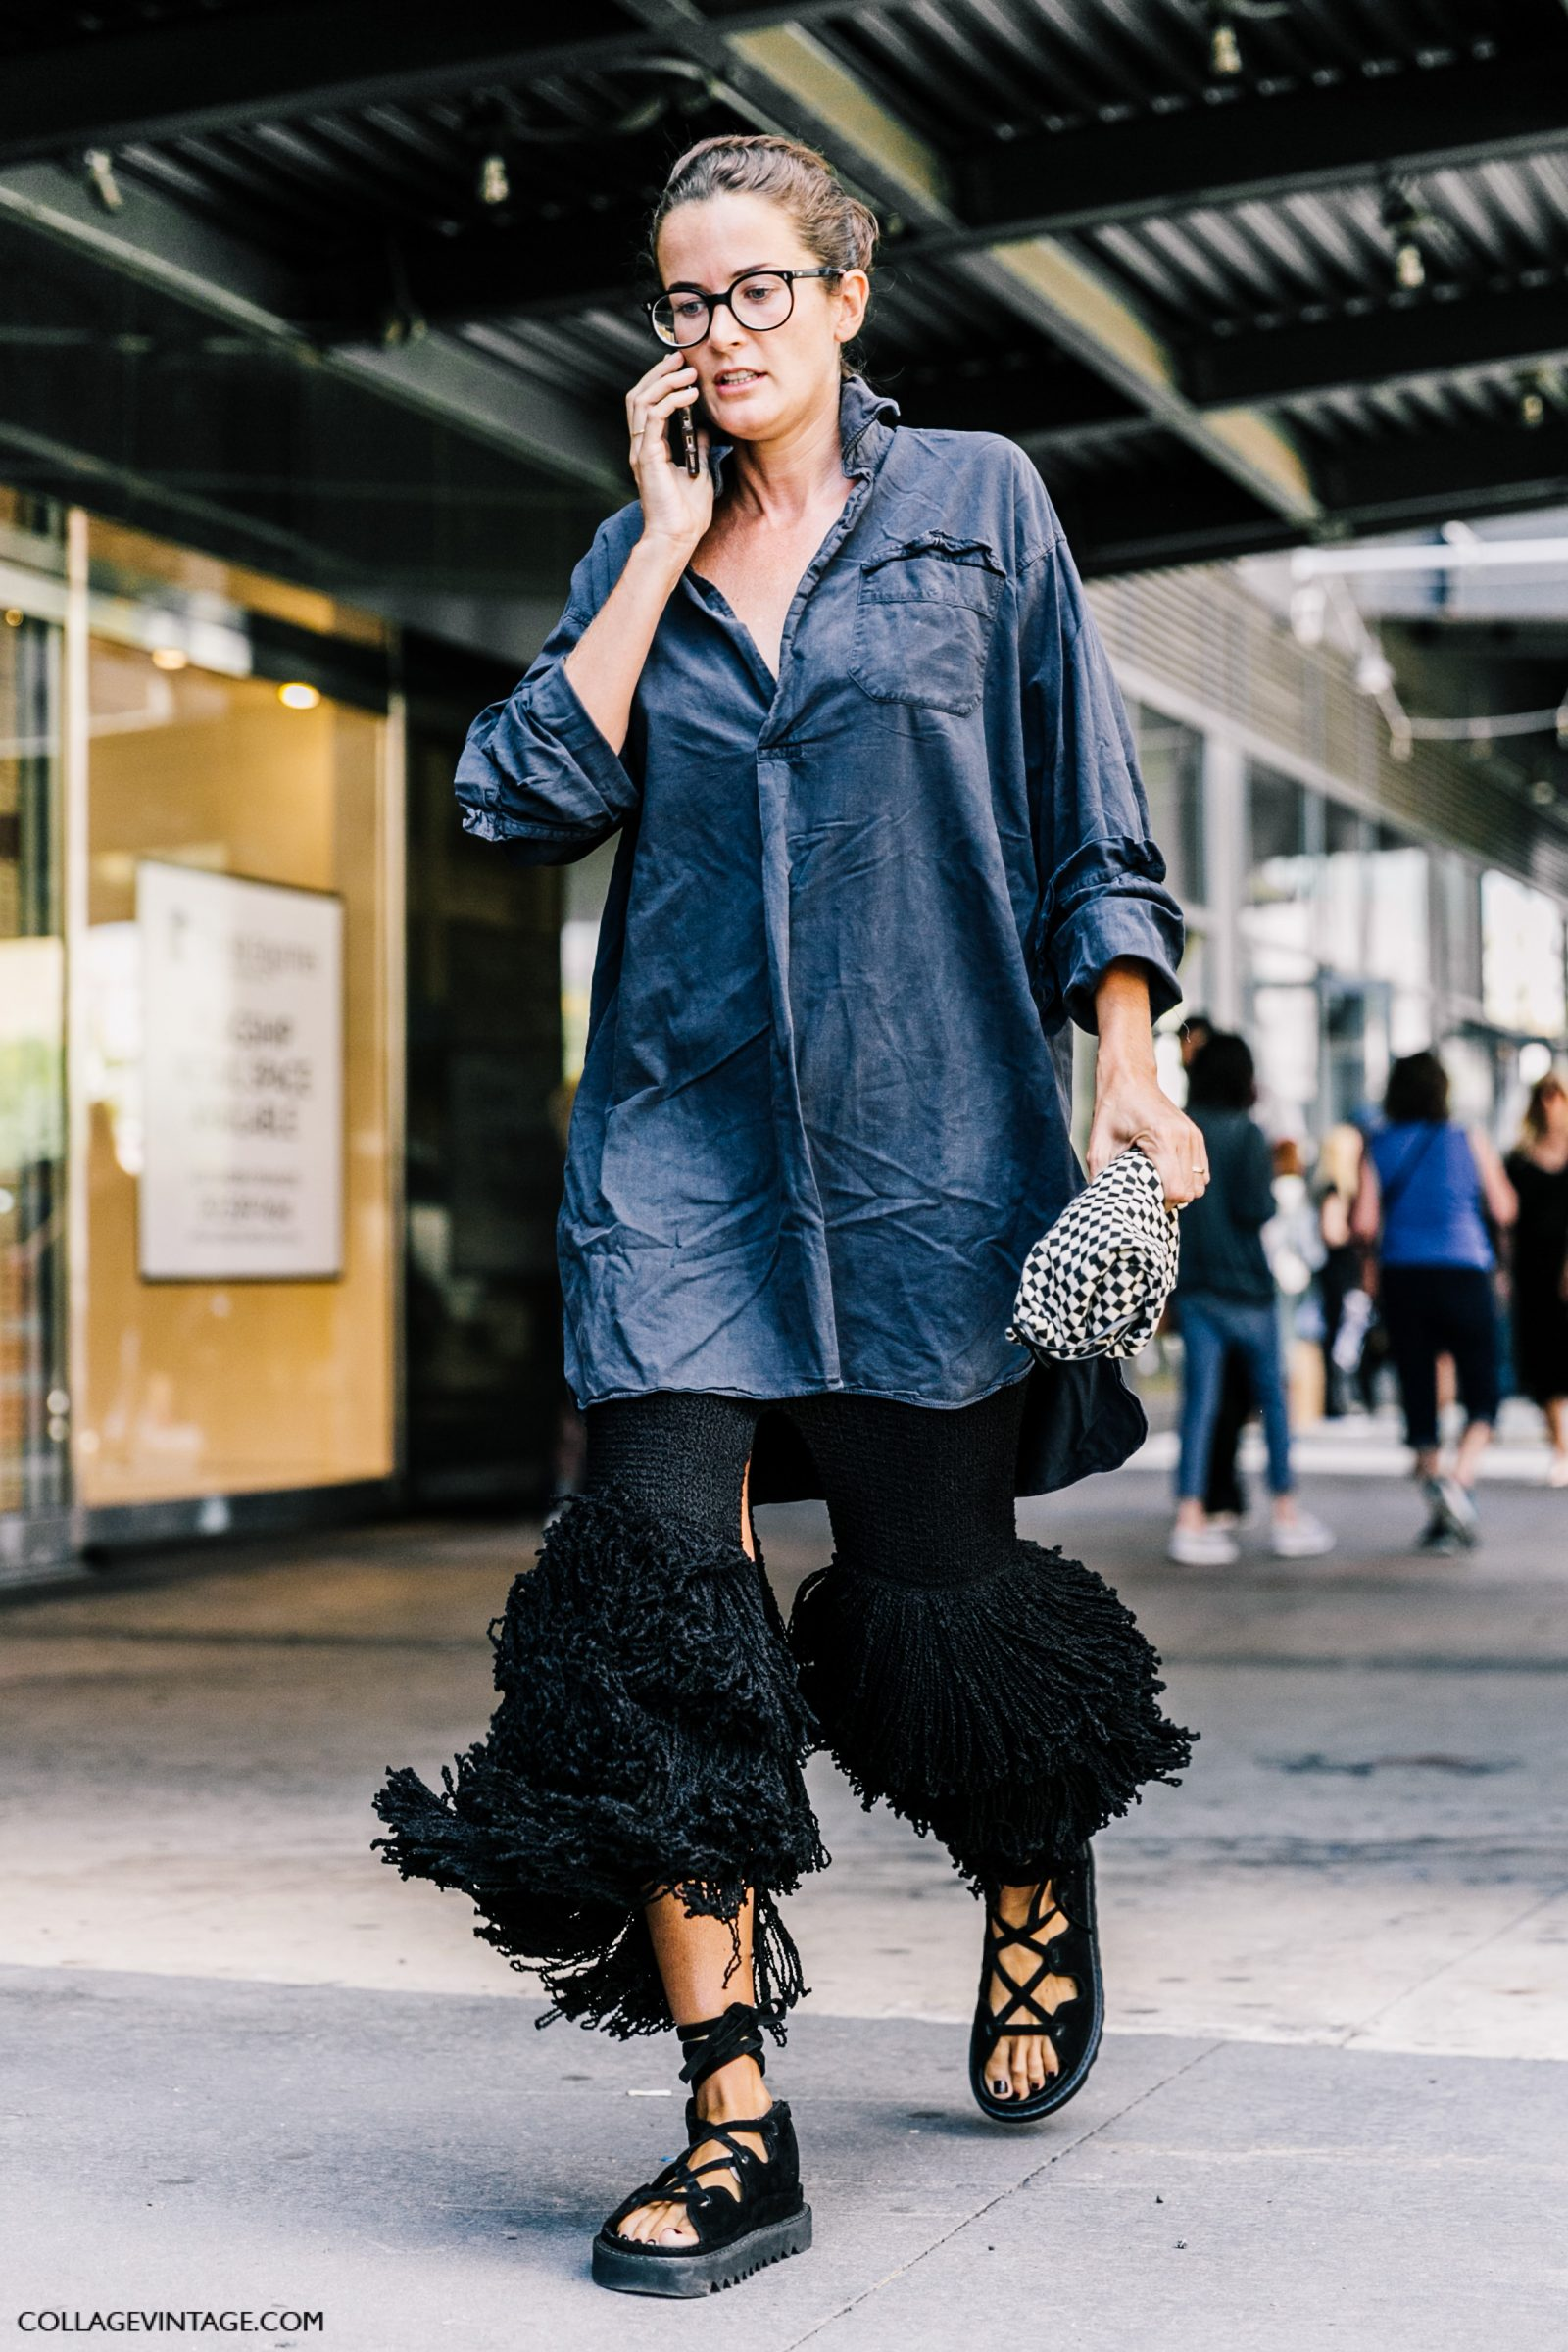 nyfw-new_york_fashion_week_ss17-street_style-outfits-collage_vintage-vintage-phillip_lim-the-row-proenza_schouler-rossie_aussolin-99